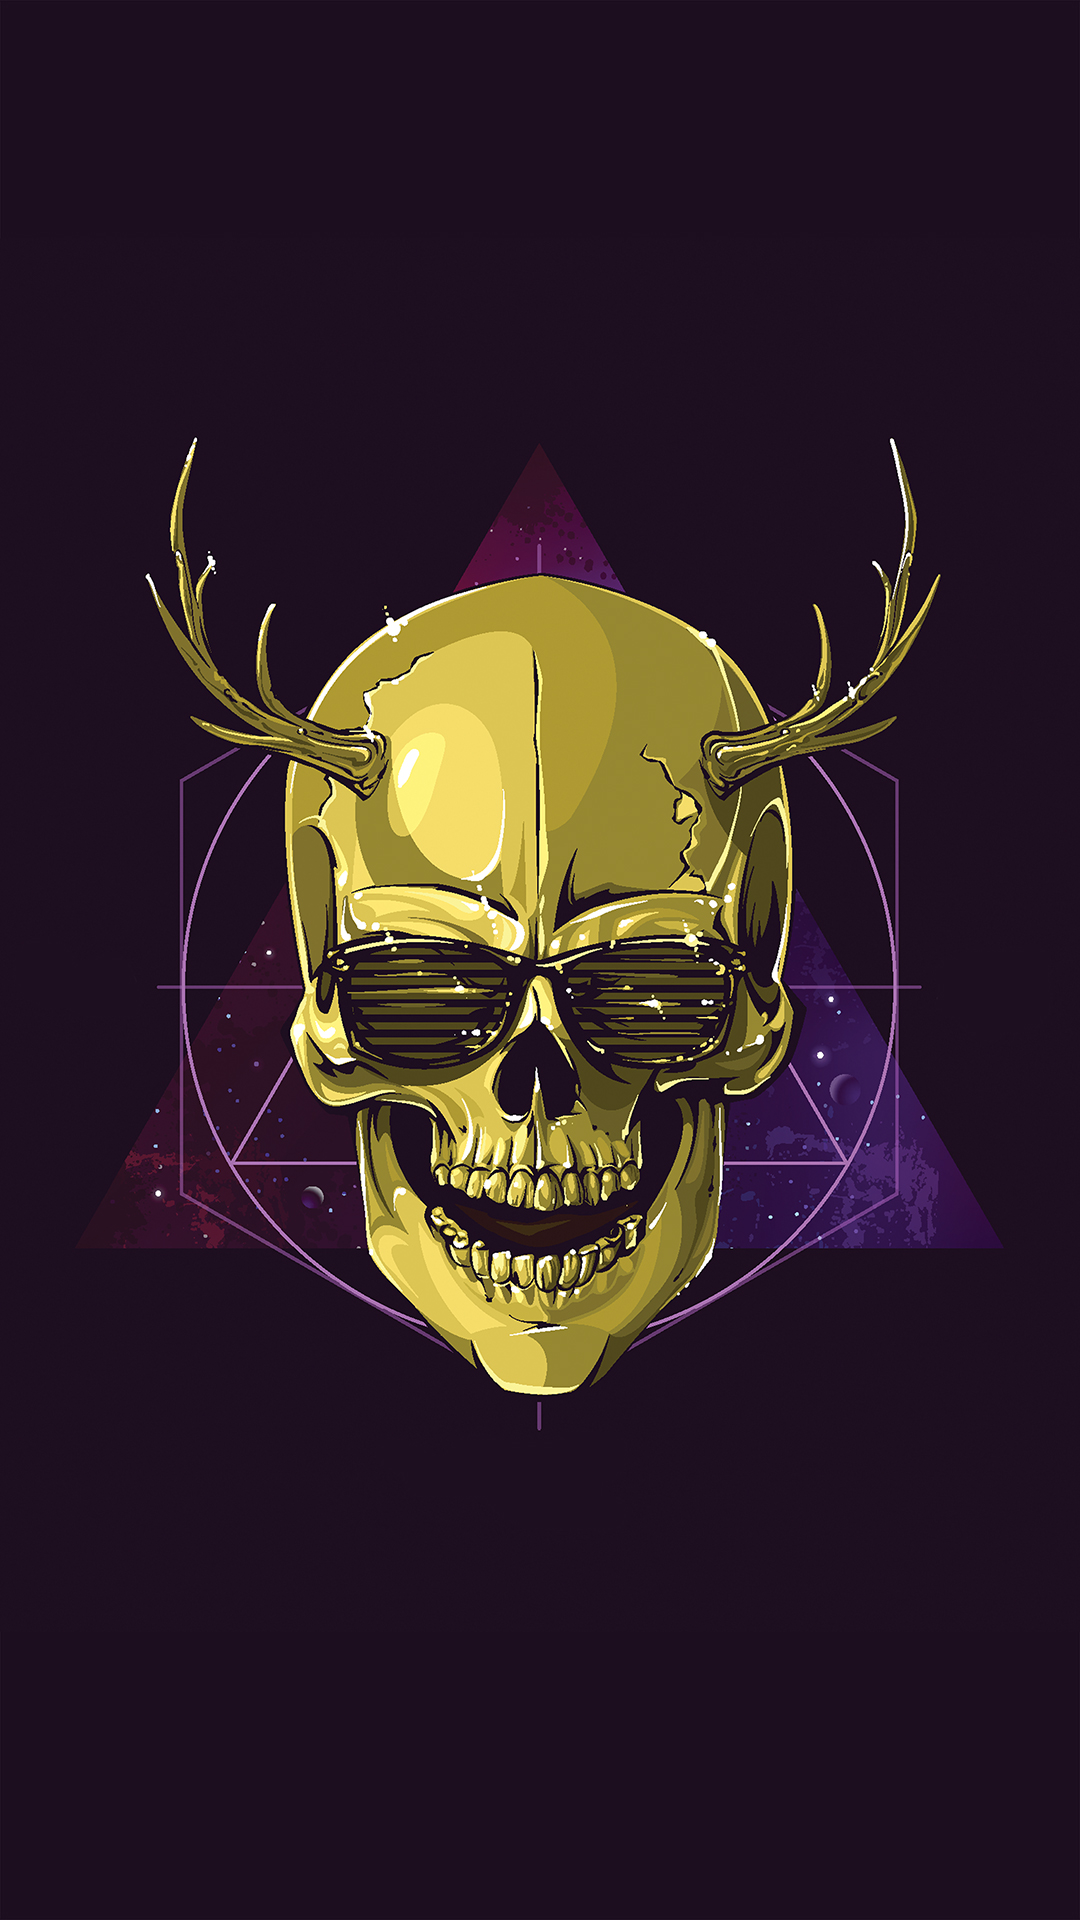 Hd wallpaper download for android phones - Hipster Skull